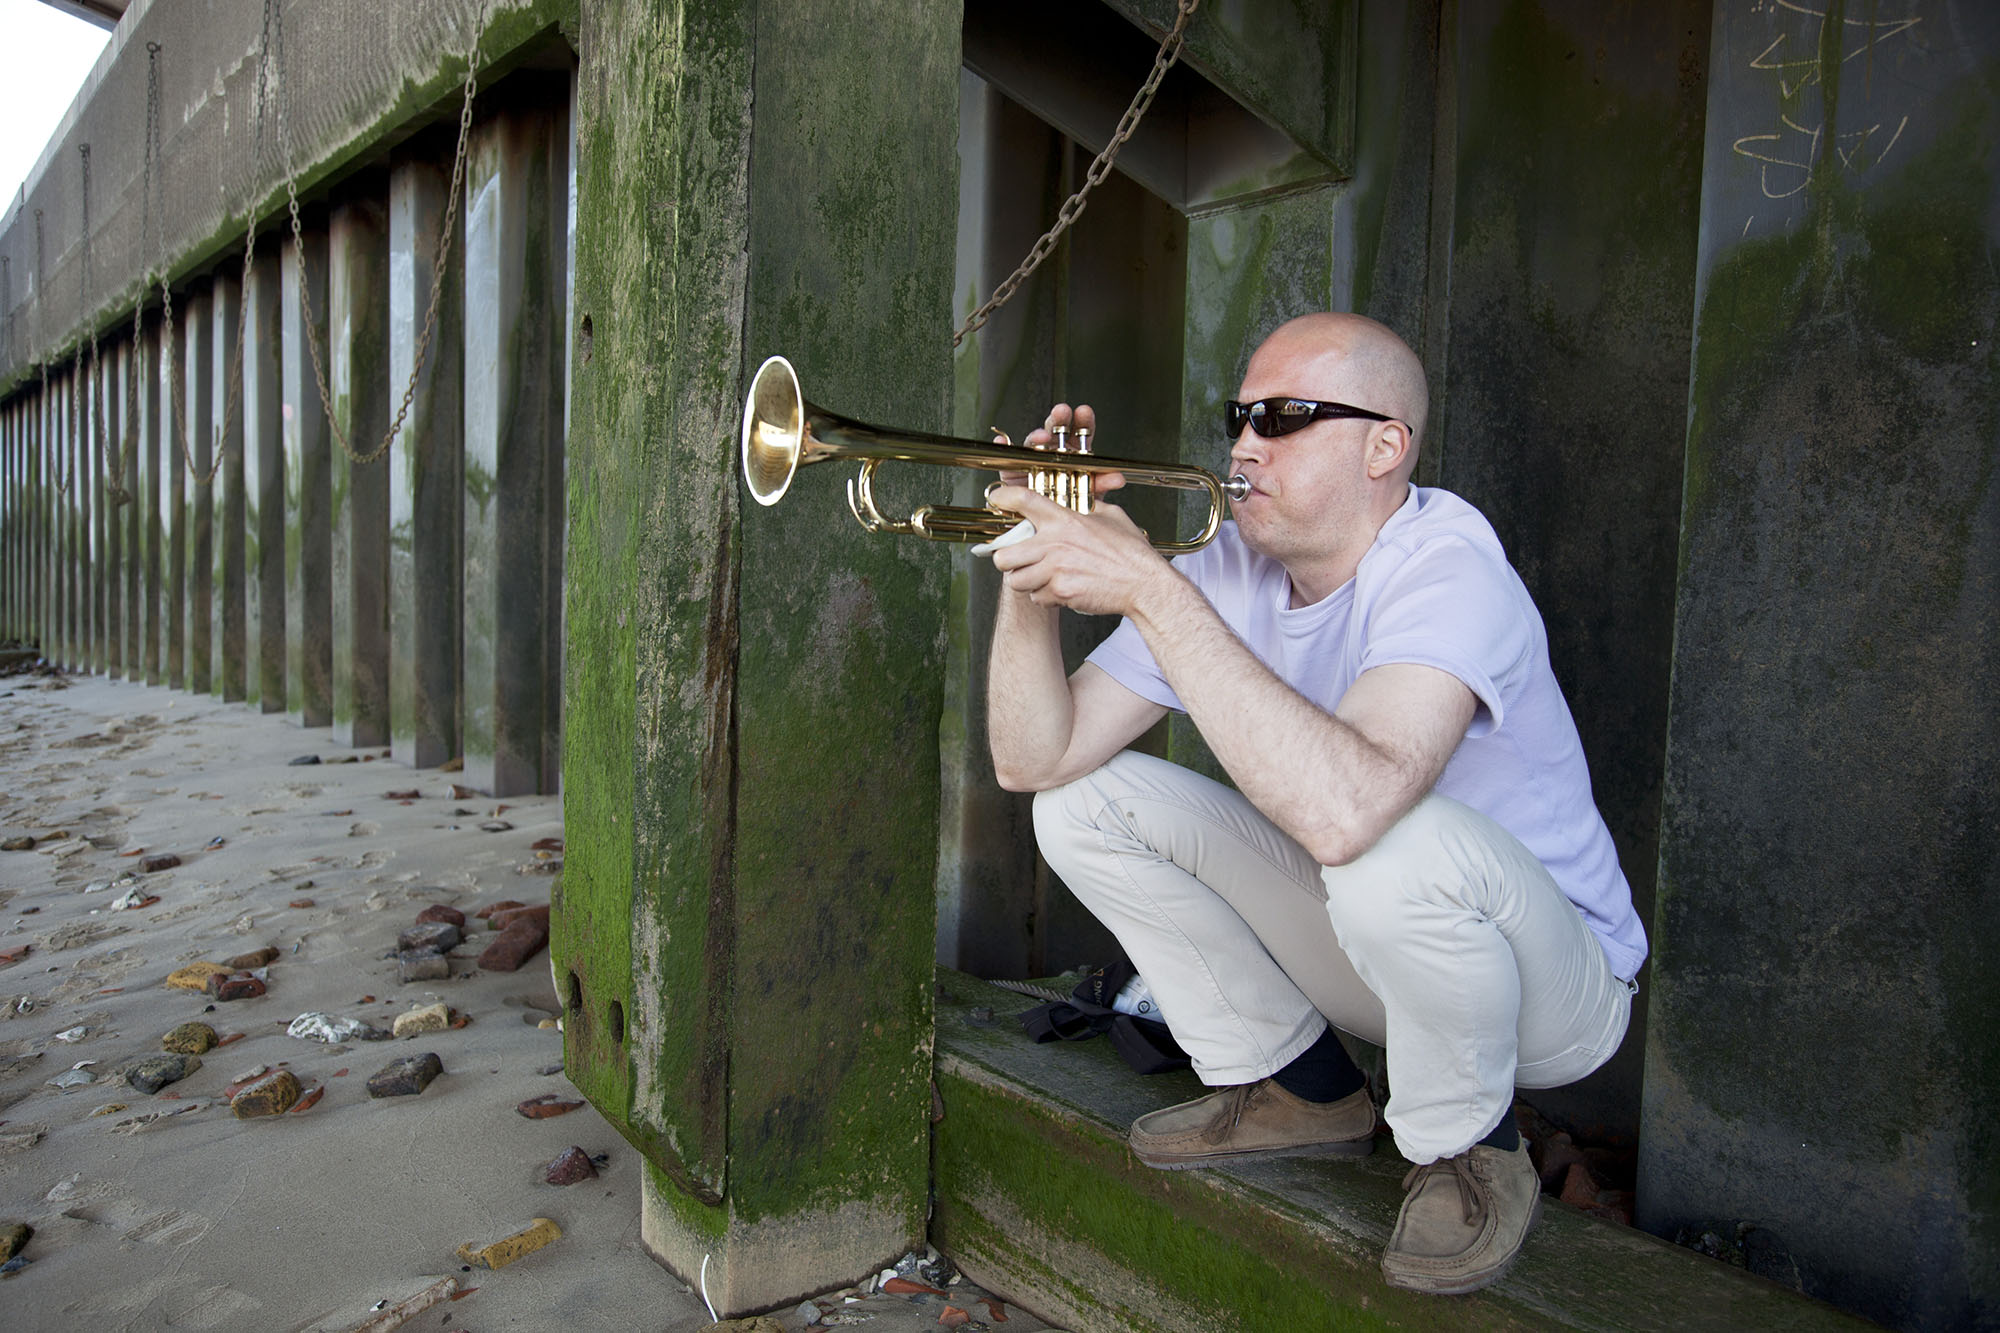 Man plays a trumpet underneath Blackfriars Bridge on the shore of the River Thames.